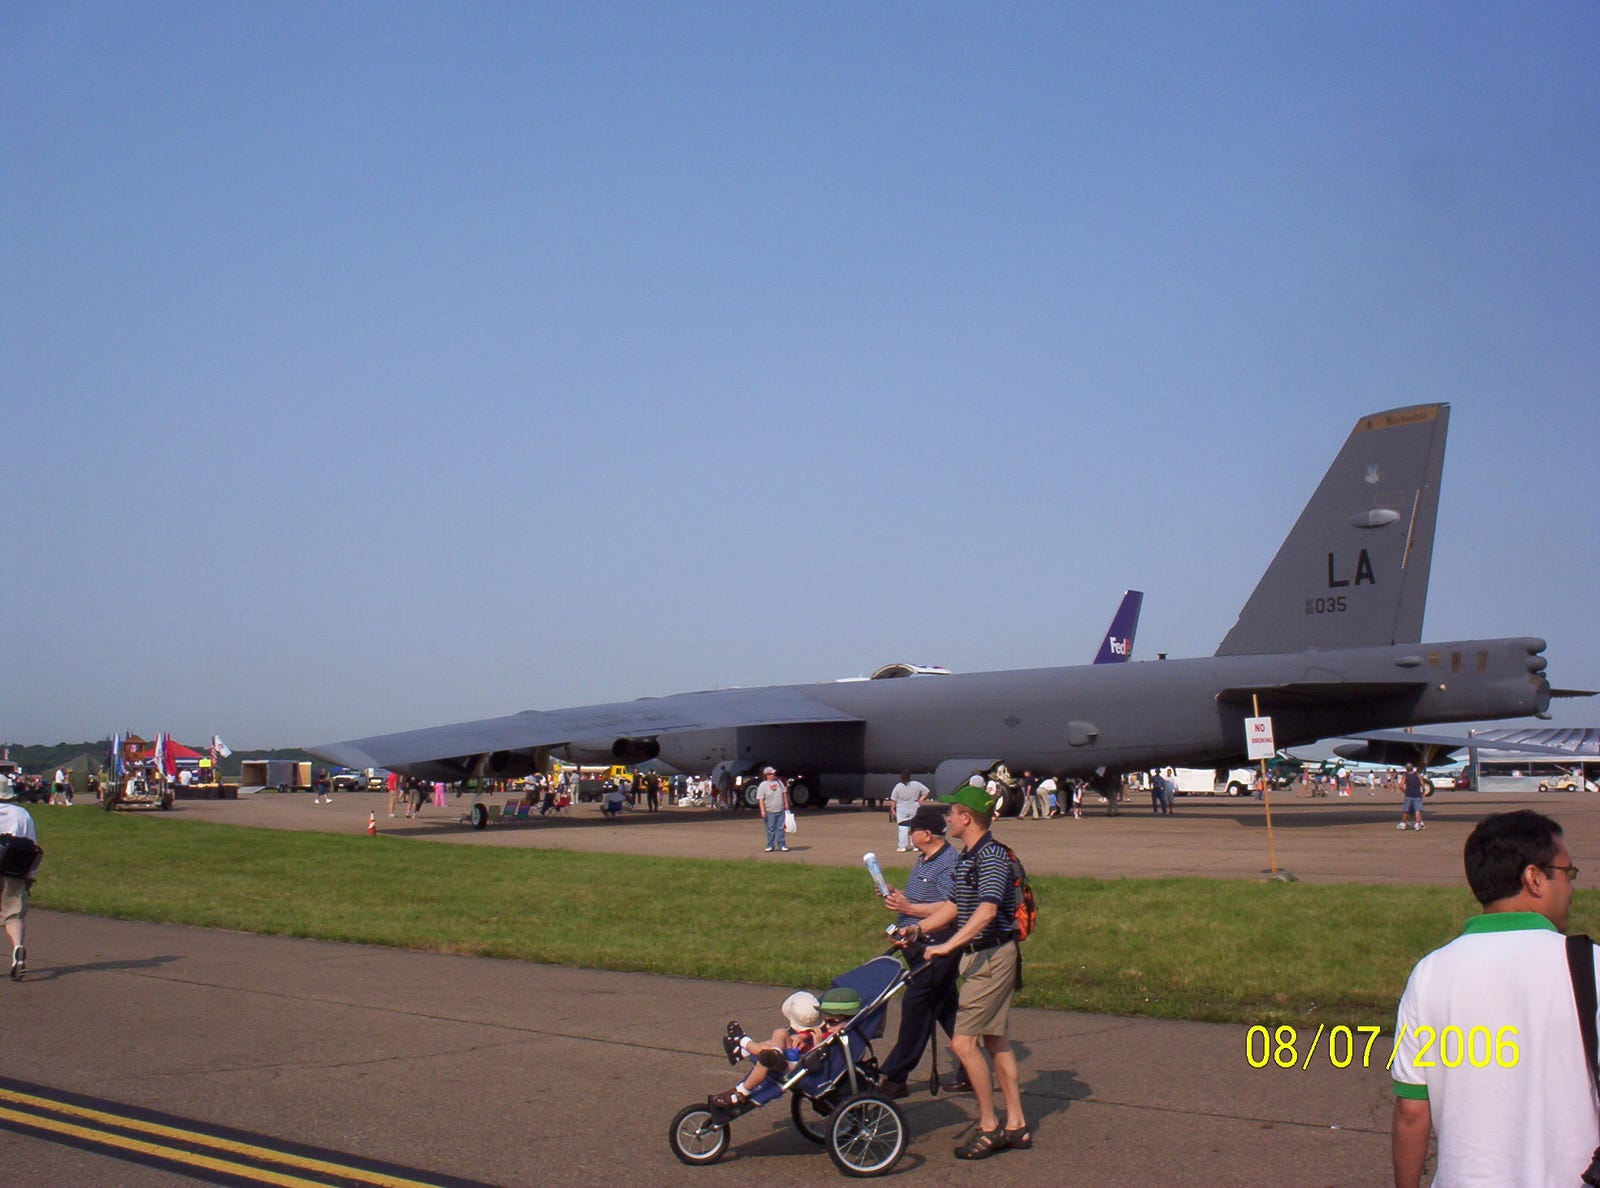 A crowd favorite, the B-52